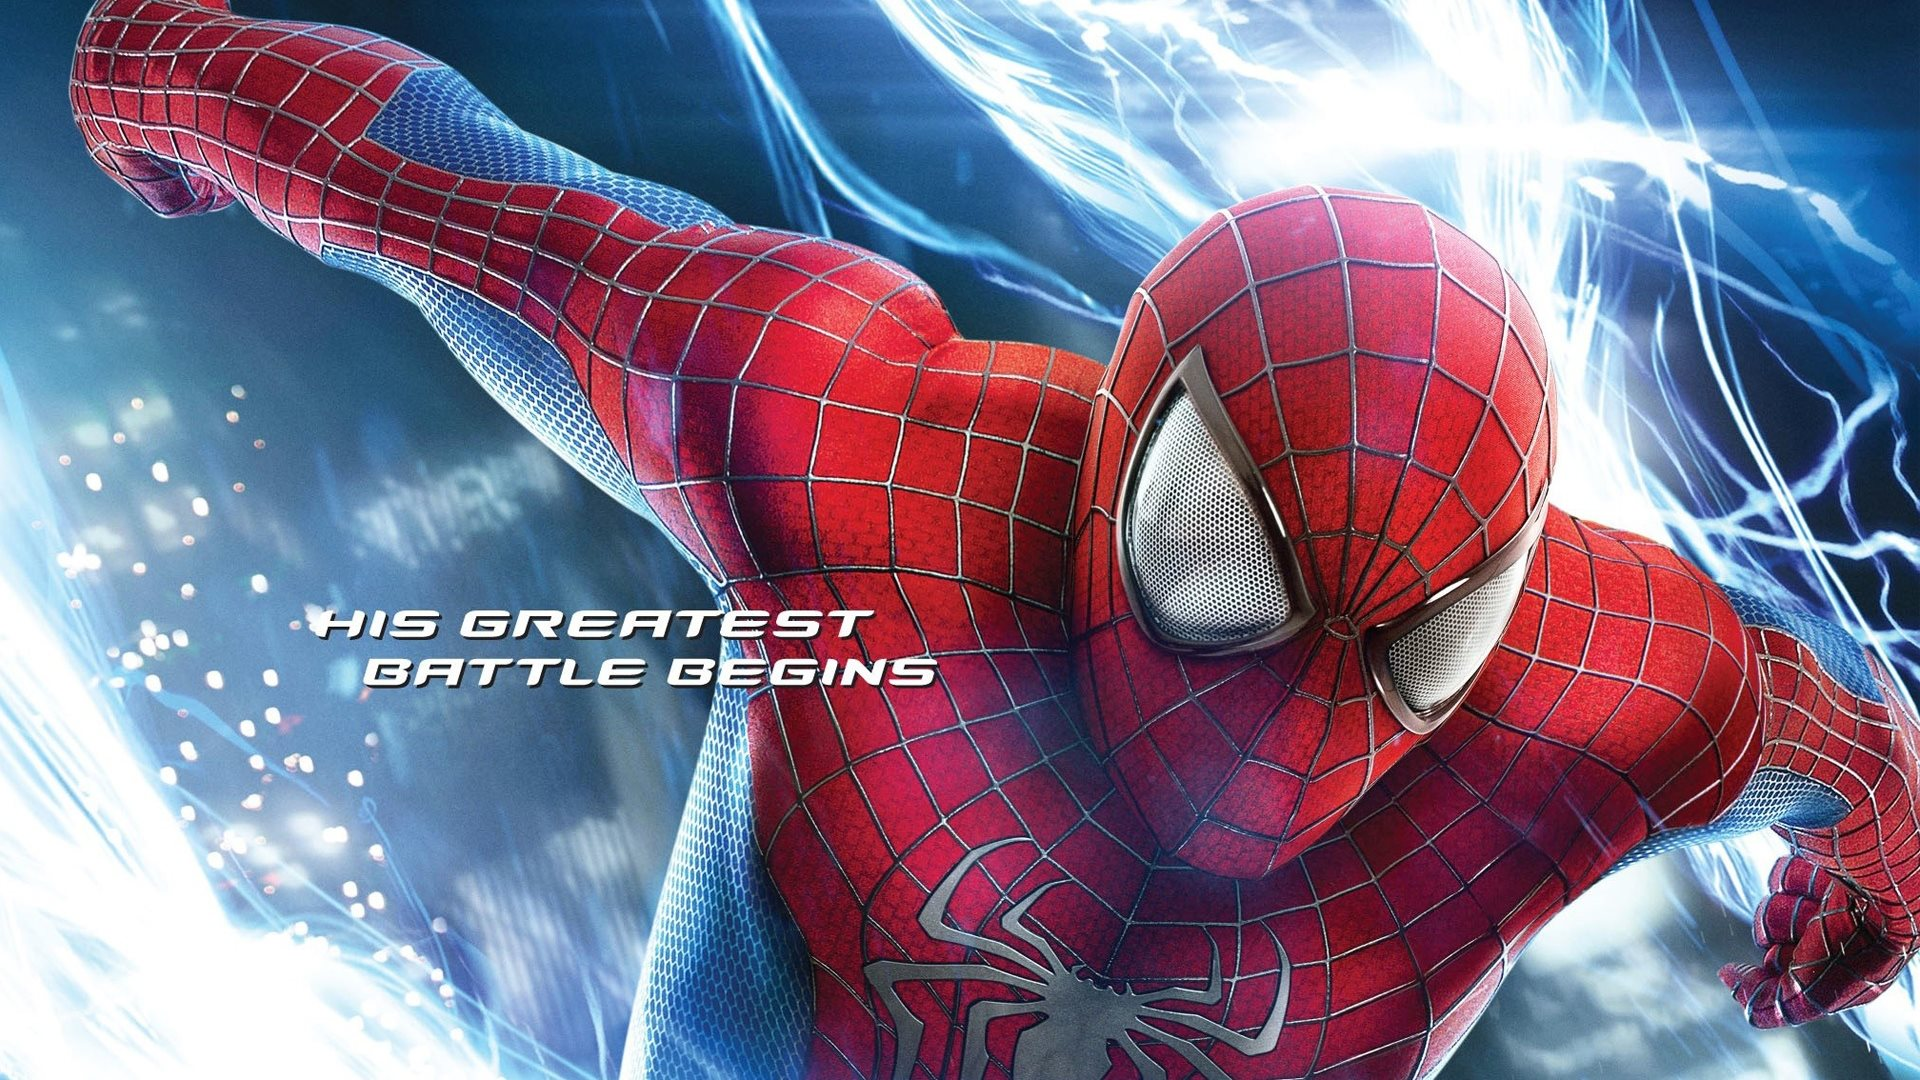 21 April Spiderman Hd Wallpapers 1080p Amazing Spiderman